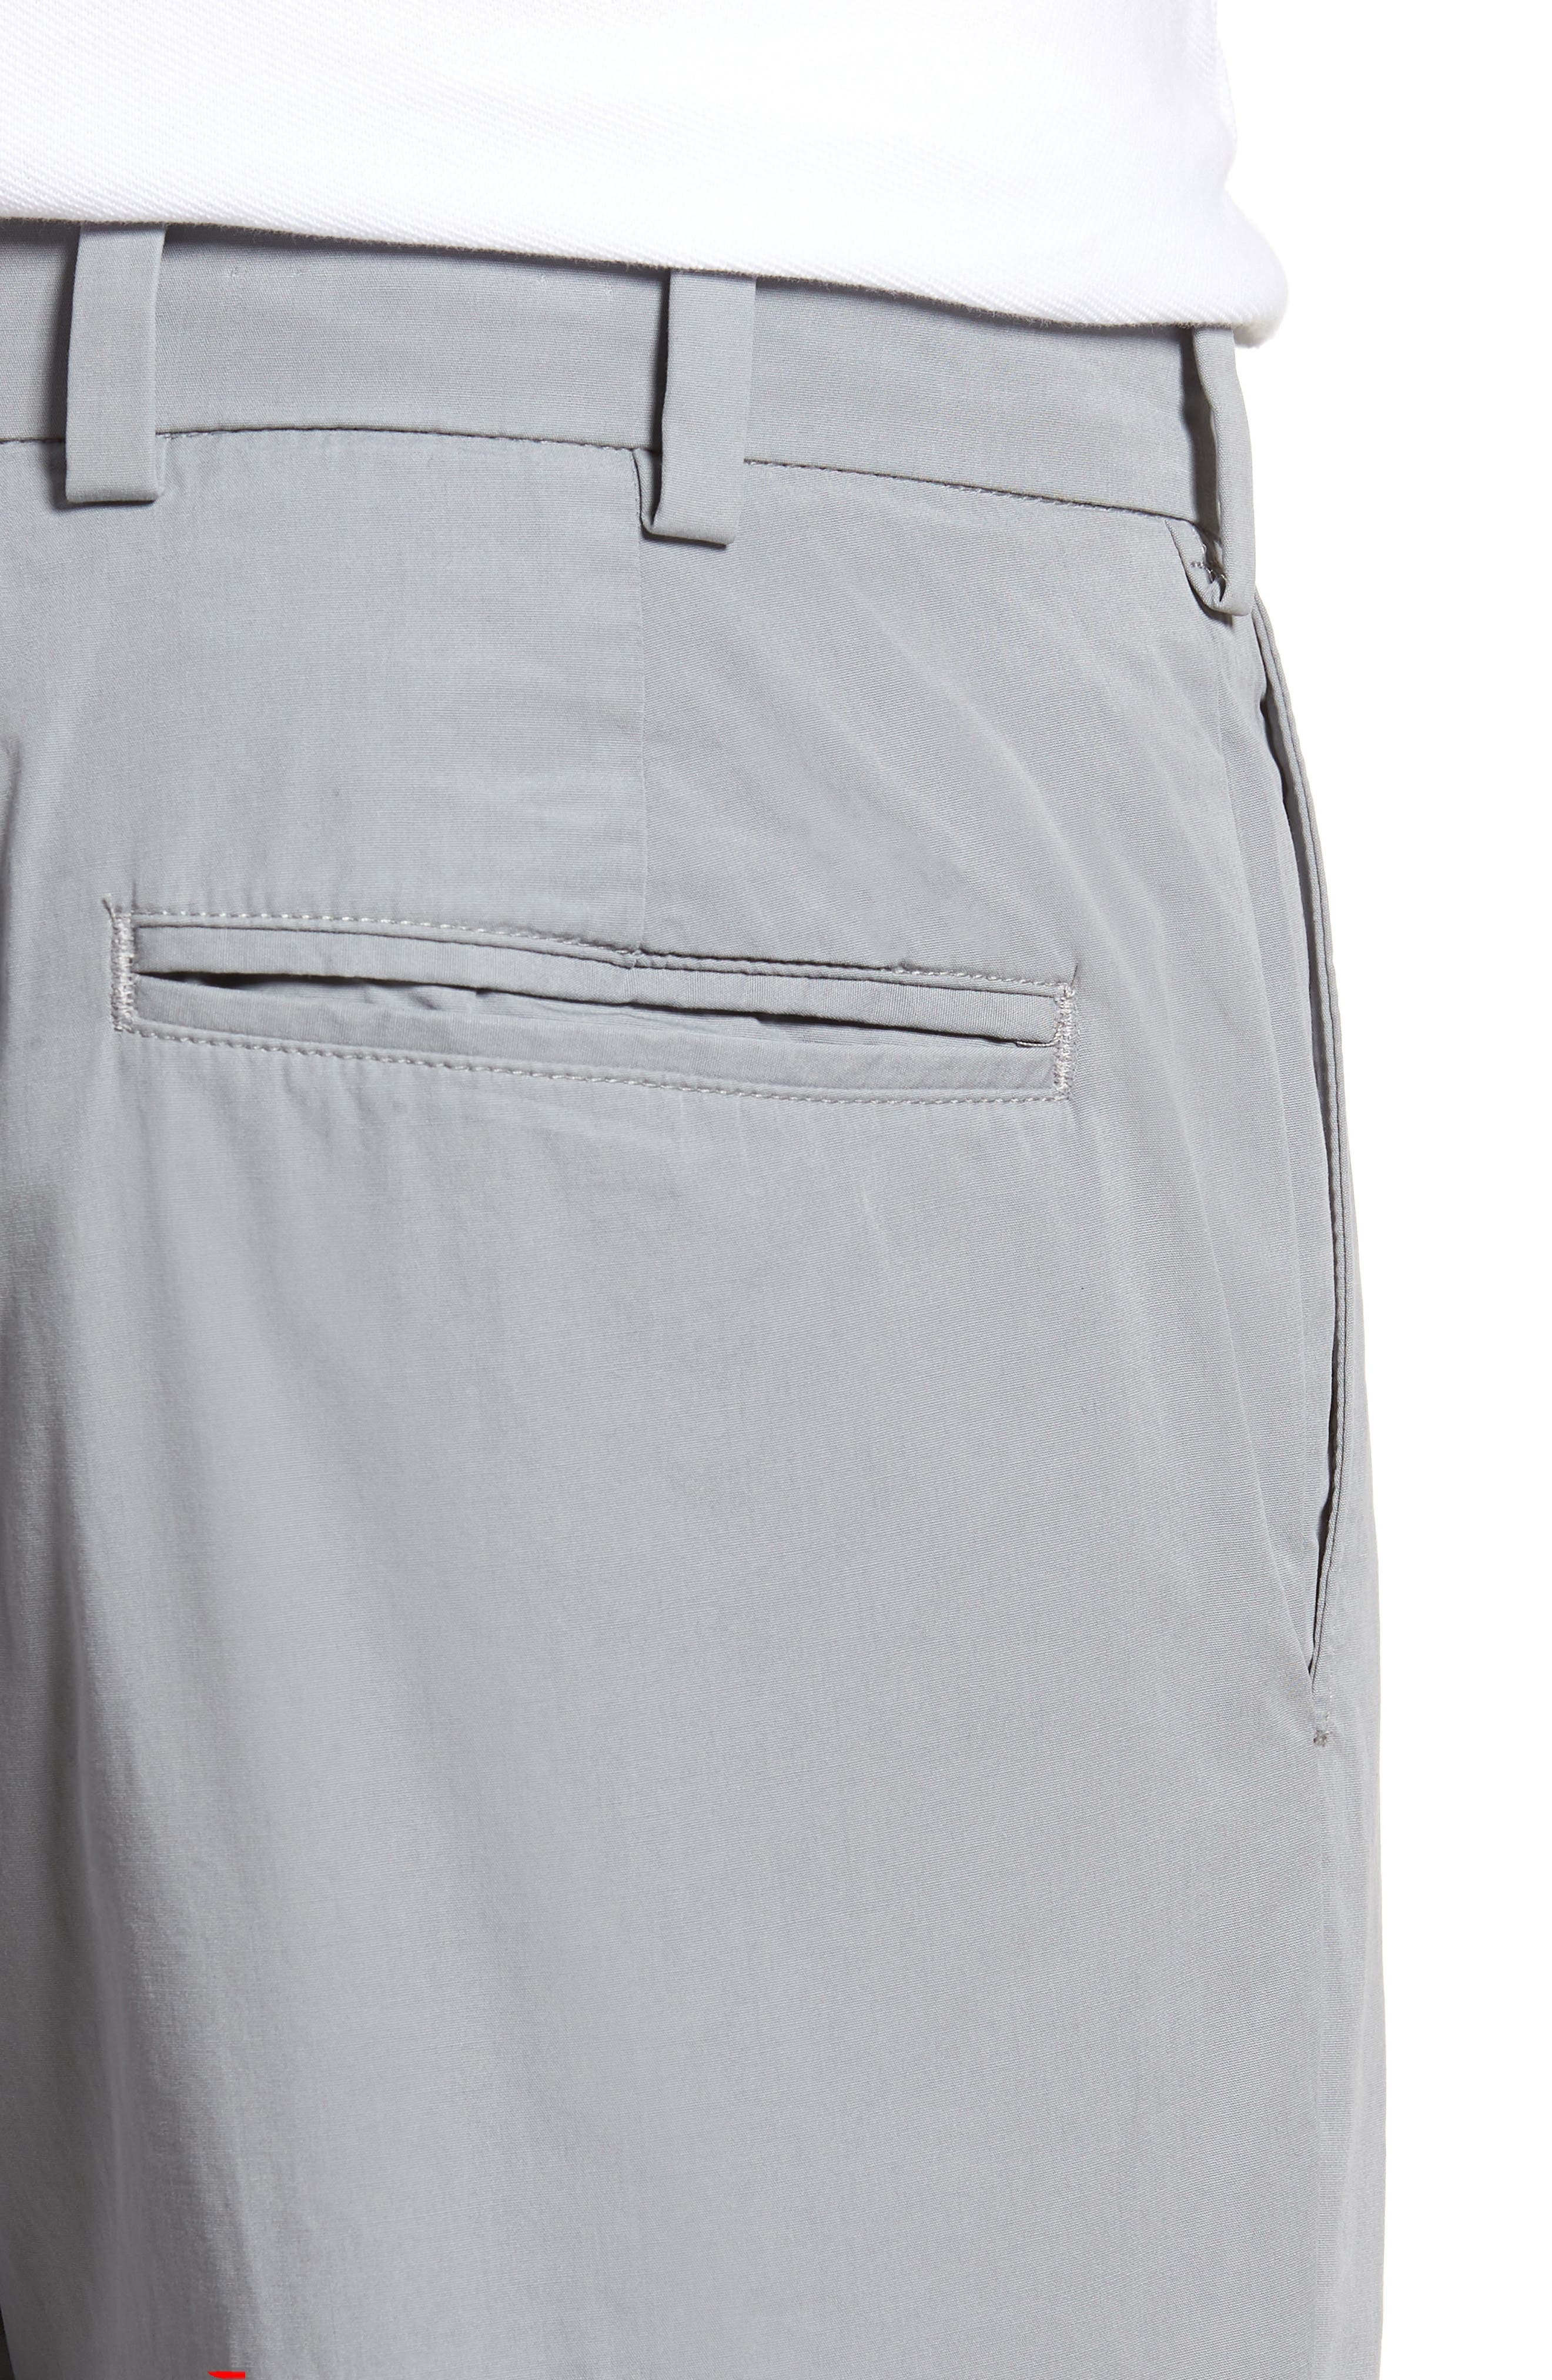 M3 Straight Fit Flat Front Tropical Poplin Pants,                             Alternate thumbnail 4, color,                             Nickel